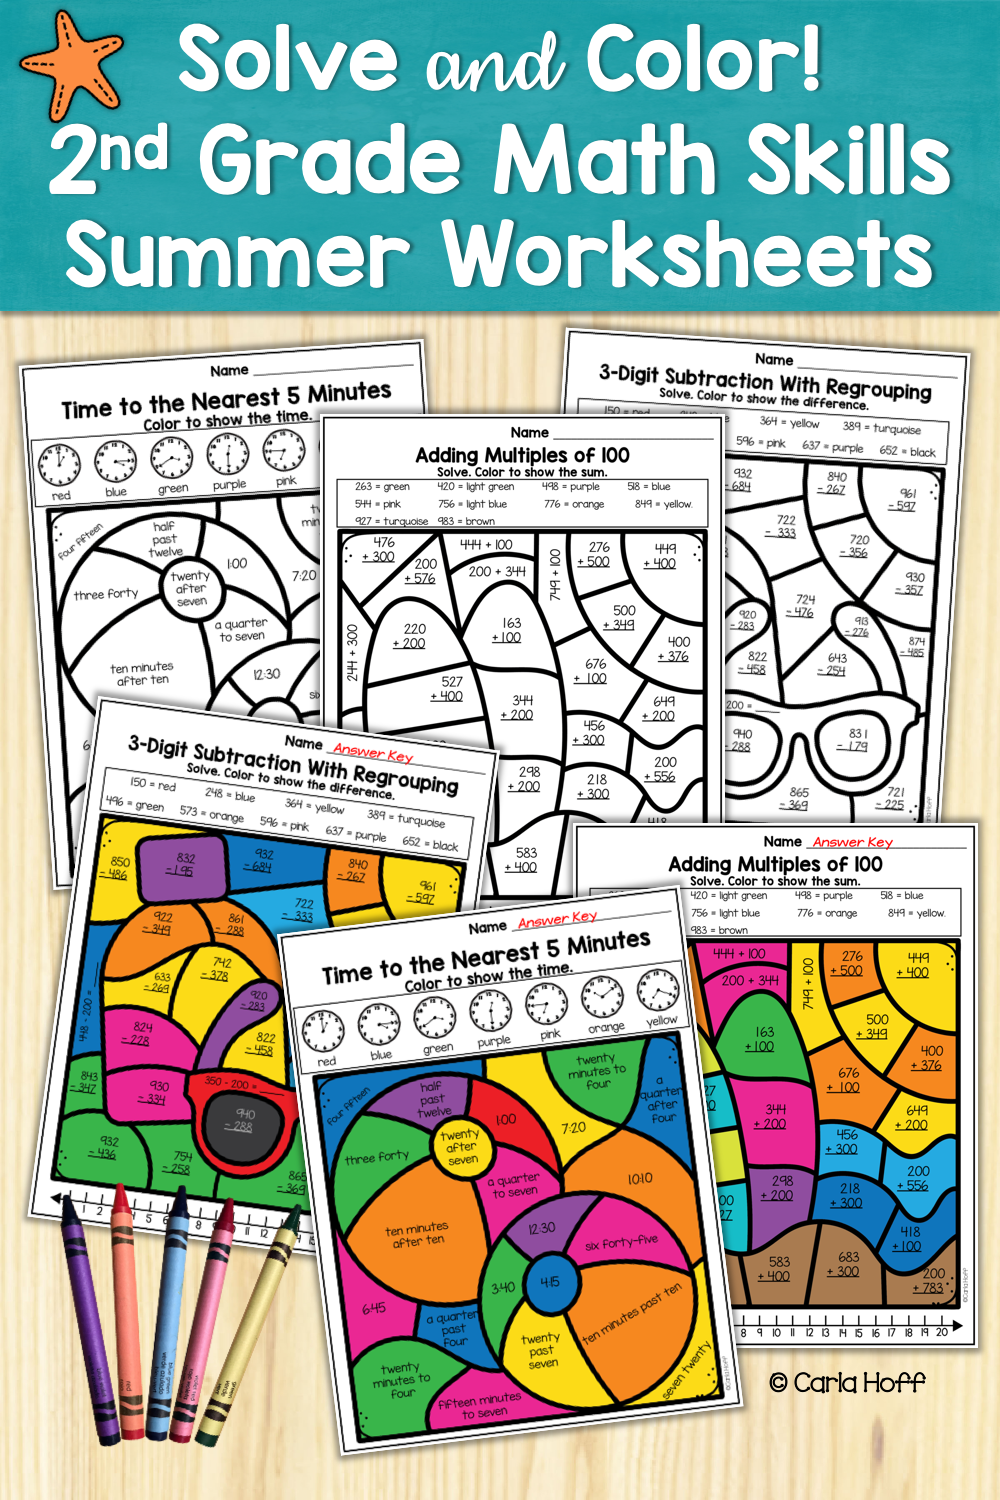 Summer 2nd Grade Math Skills Color By Code Worksheets Addition And Subtraction Math 2nd Grade Math Worksheets [ 1500 x 1000 Pixel ]